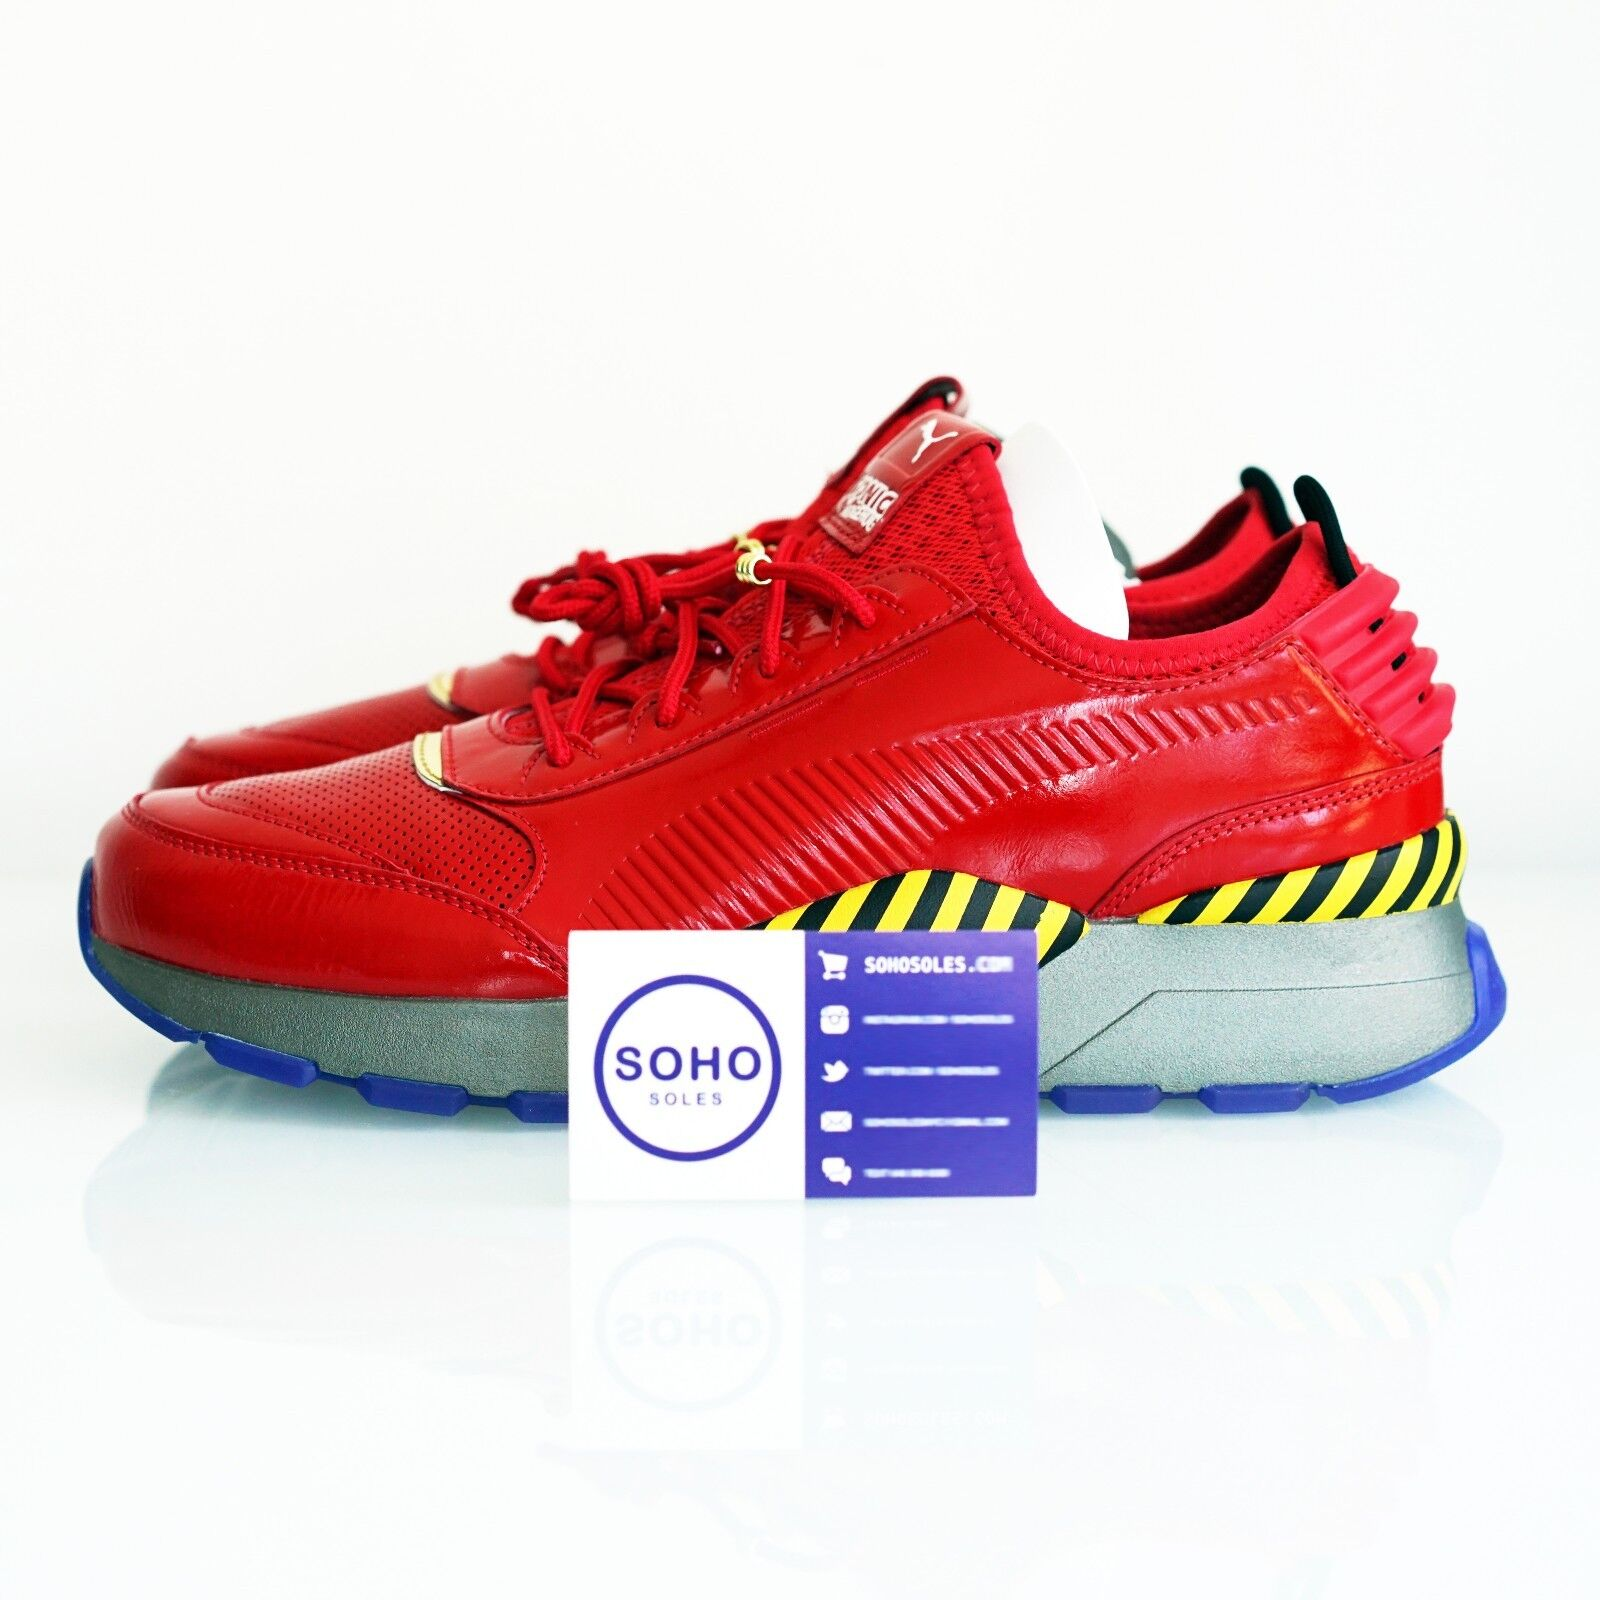 Puma RS-0 SEGA Dr. Eggman Red Yellow Black Sonic 368350-01 Size 8-13 IN HAND